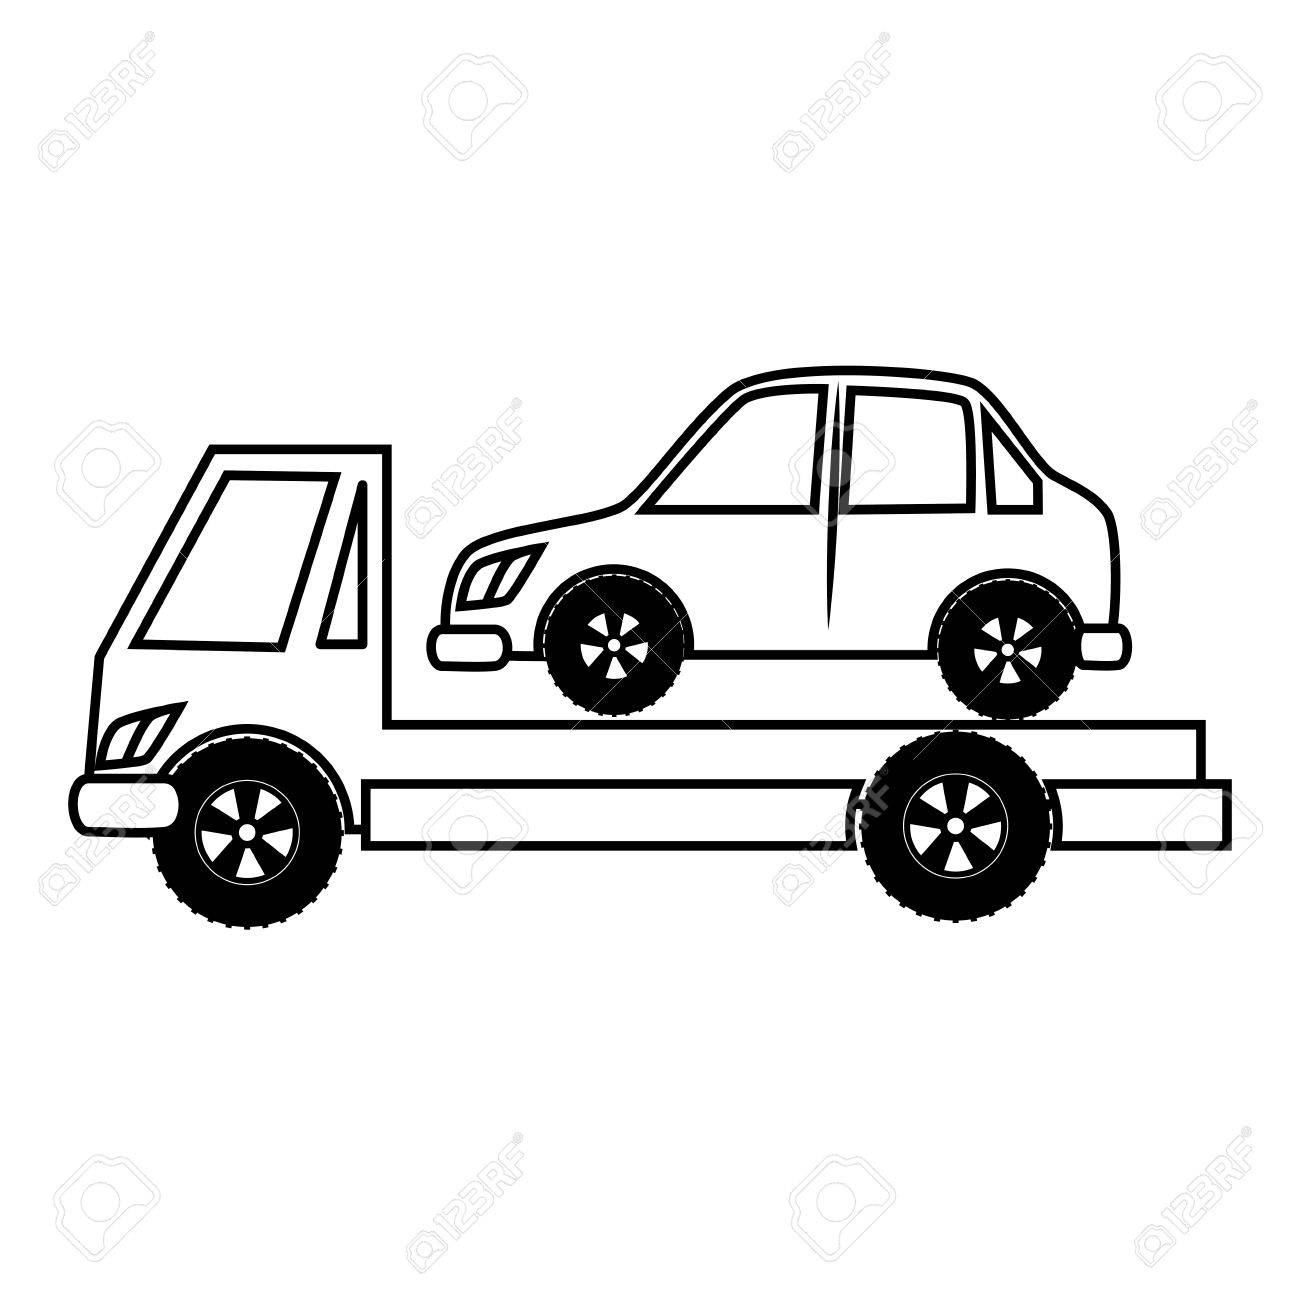 truck towing car black and white colors isolated flat icon royalty